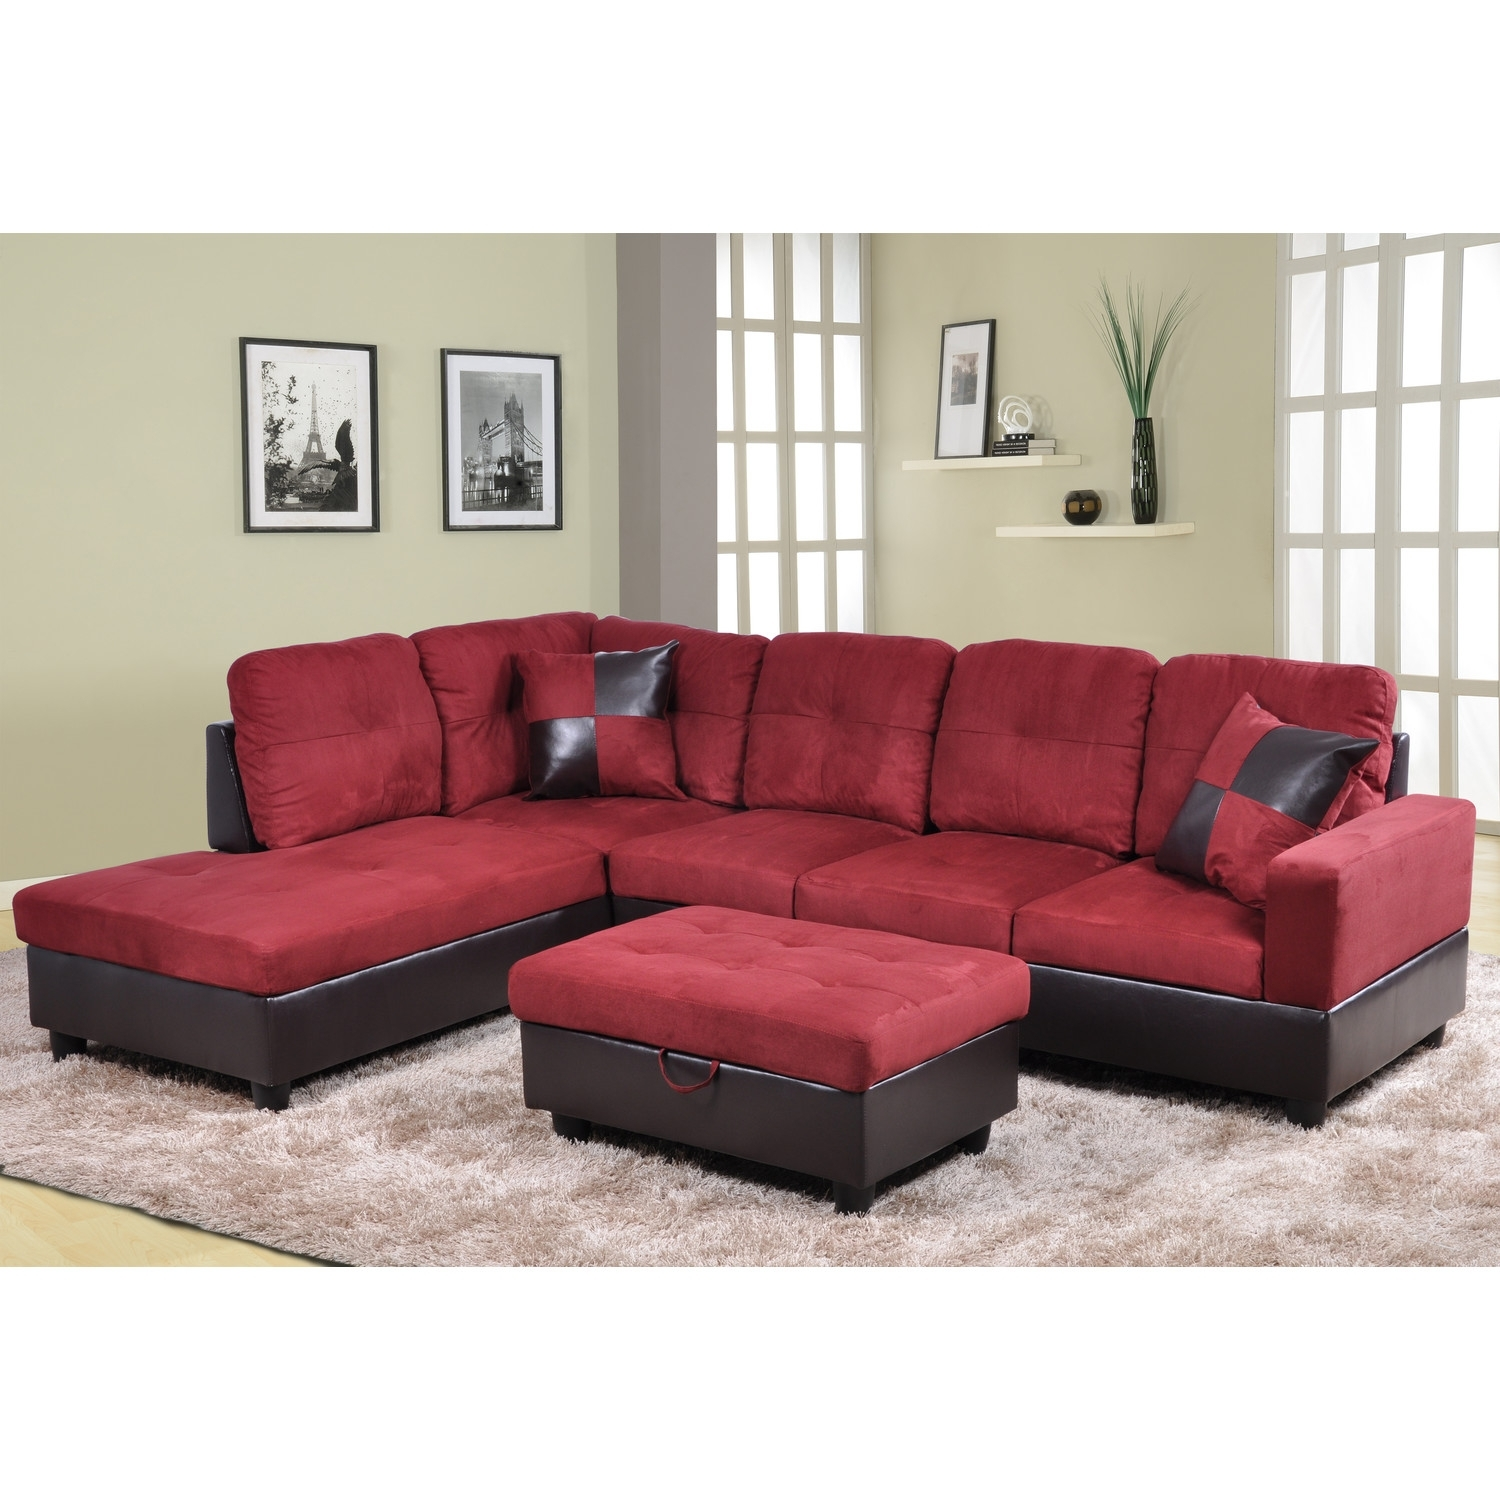 Nice Cheap Sofas For Sale About Furniture Sophisticated Designs Of In Sectional Sofas Under (View 7 of 15)